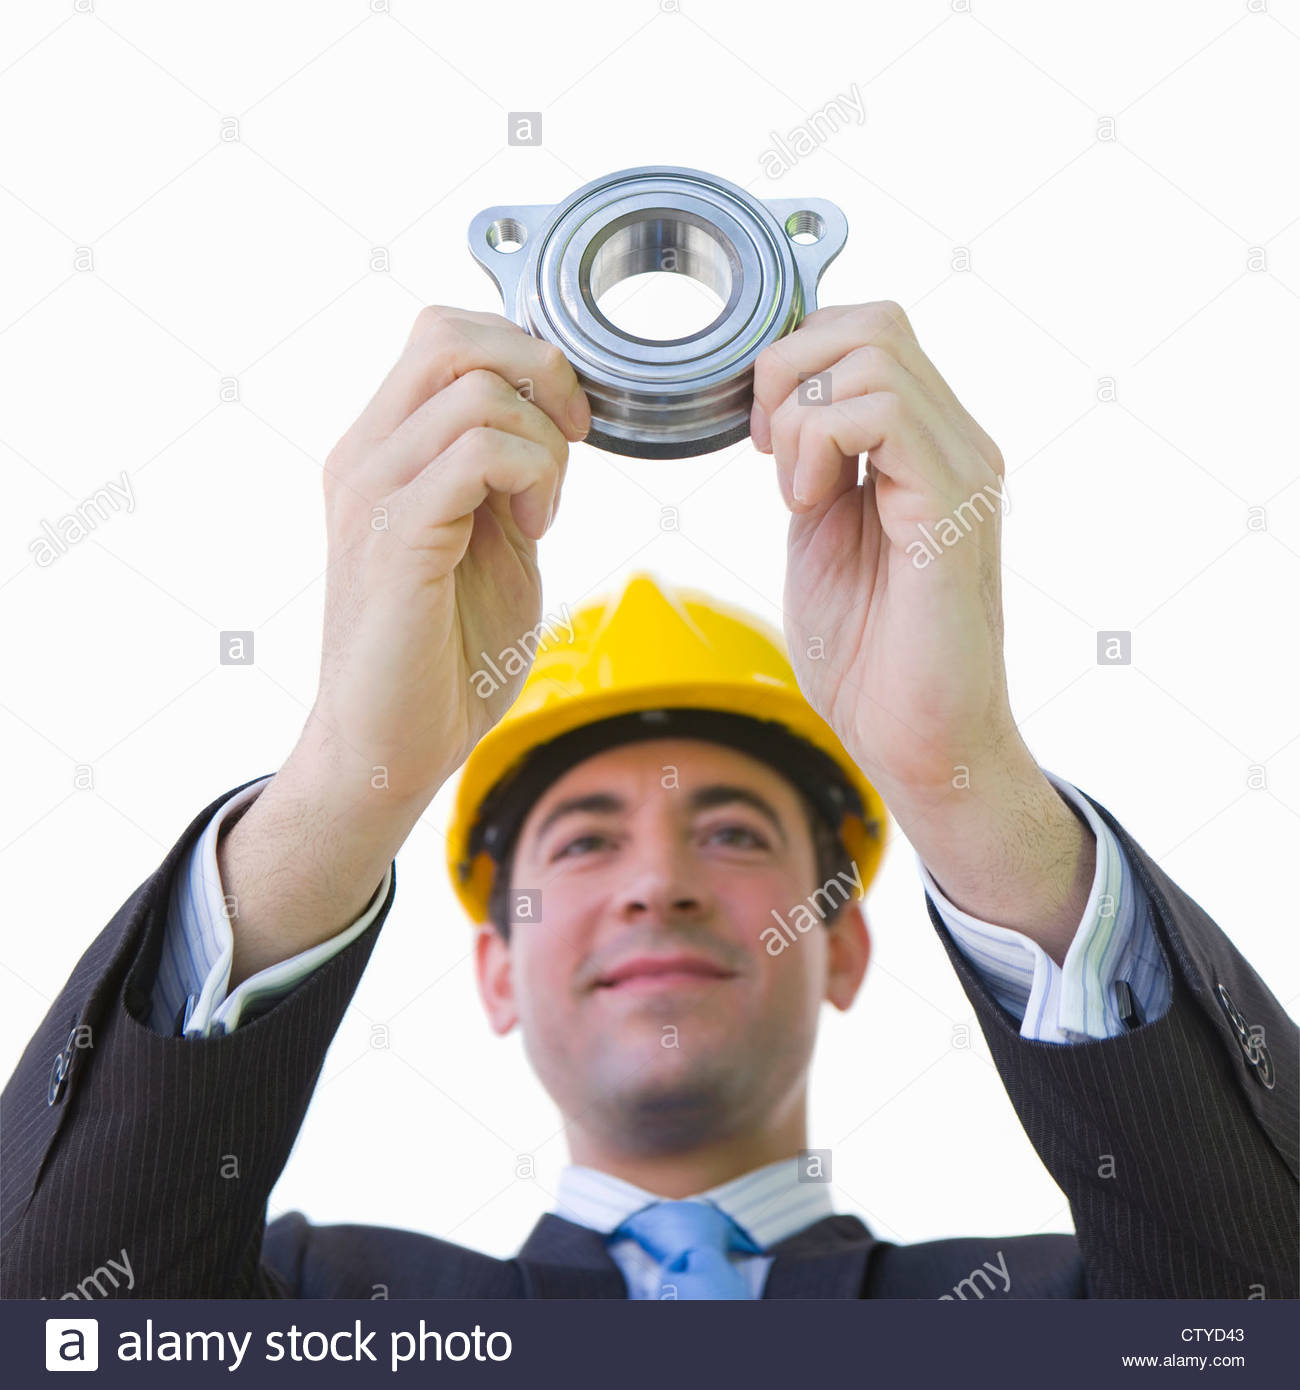 Cut Out Of Male Engineer Holding Component - Stock Image